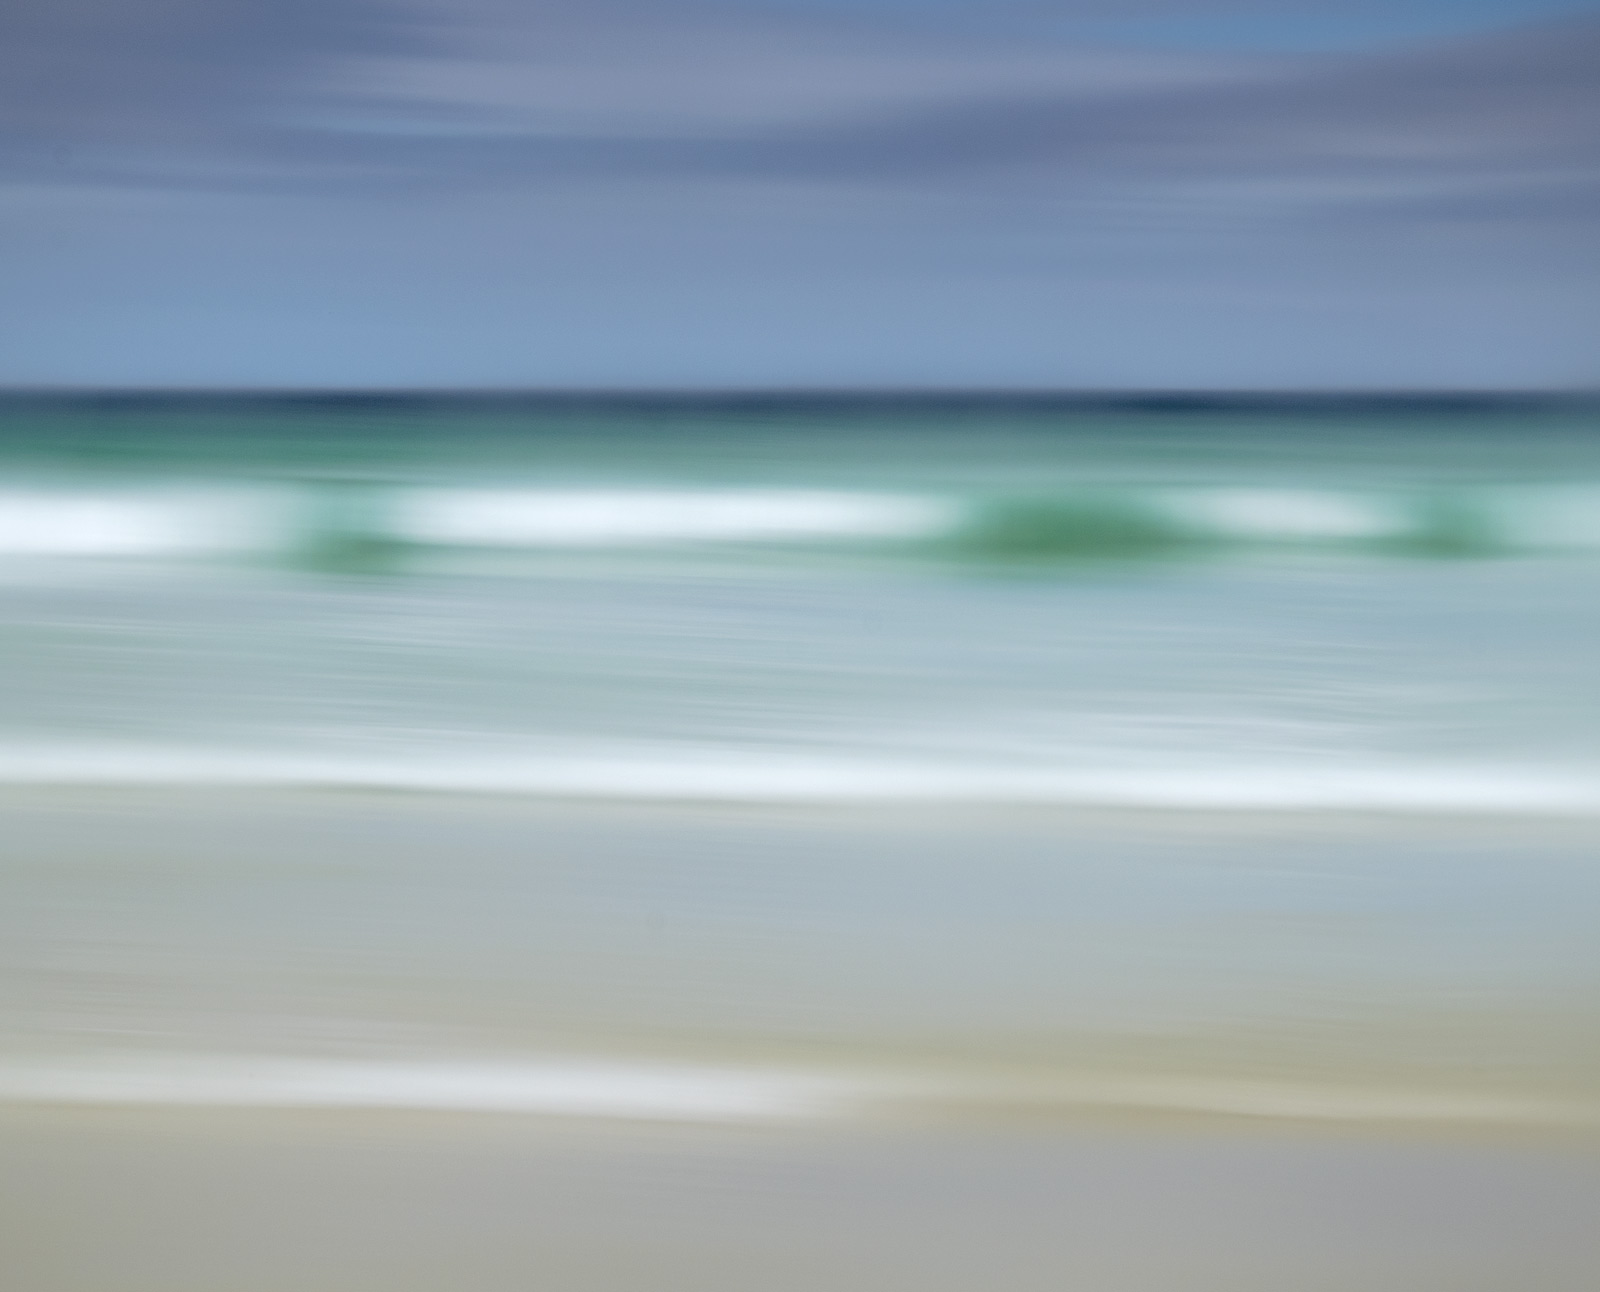 A beautiful summer day with wave after breaking wave marching in from a turquoise sea rolling over a pale sand beach beneath...